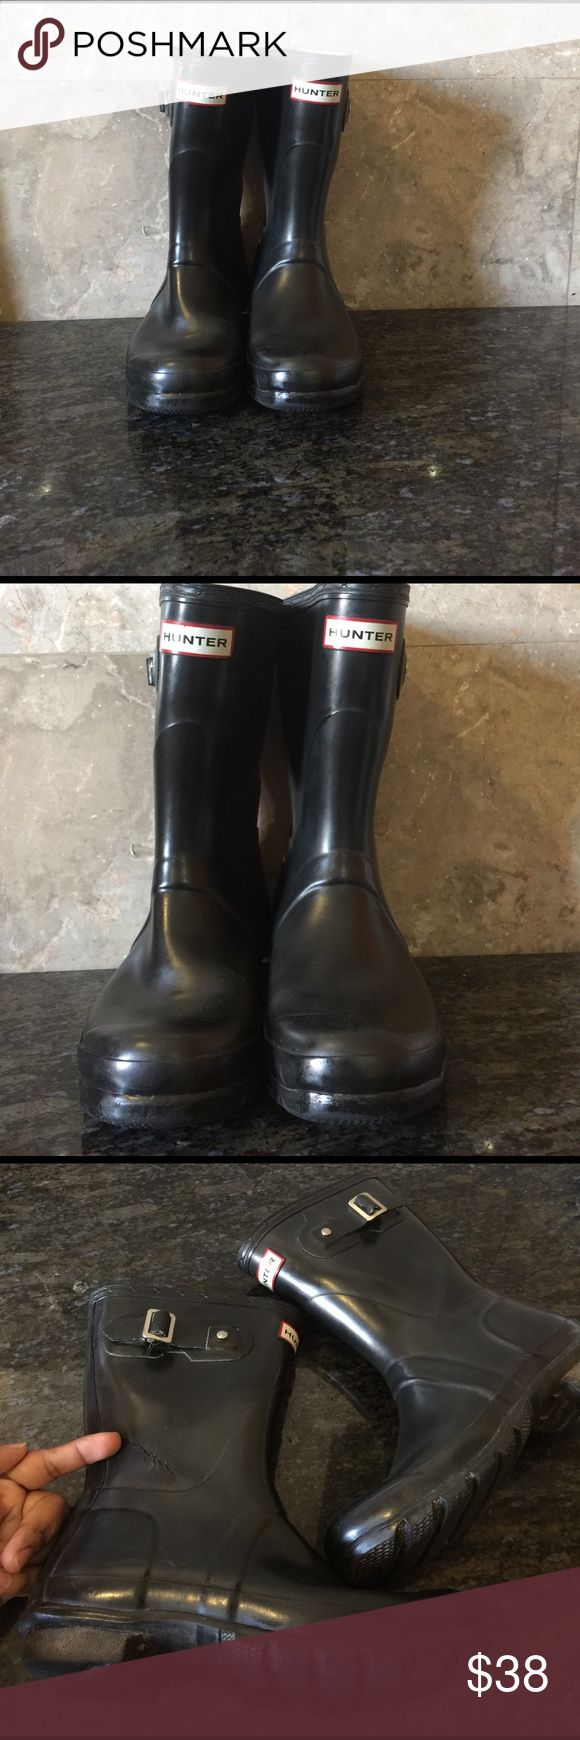 Short Hunter boots Pre loved with defects. Can be cleaned and repaired but I will leave that up to you in exchange of an awesome price. This are high in demand and sell like new condition for $95.00 I add new pairs weekly. So if you don't mind the tear and wear these are all yours.size 7 but run a one size big. Hunter Boots Shoes Winter & Rain Boots